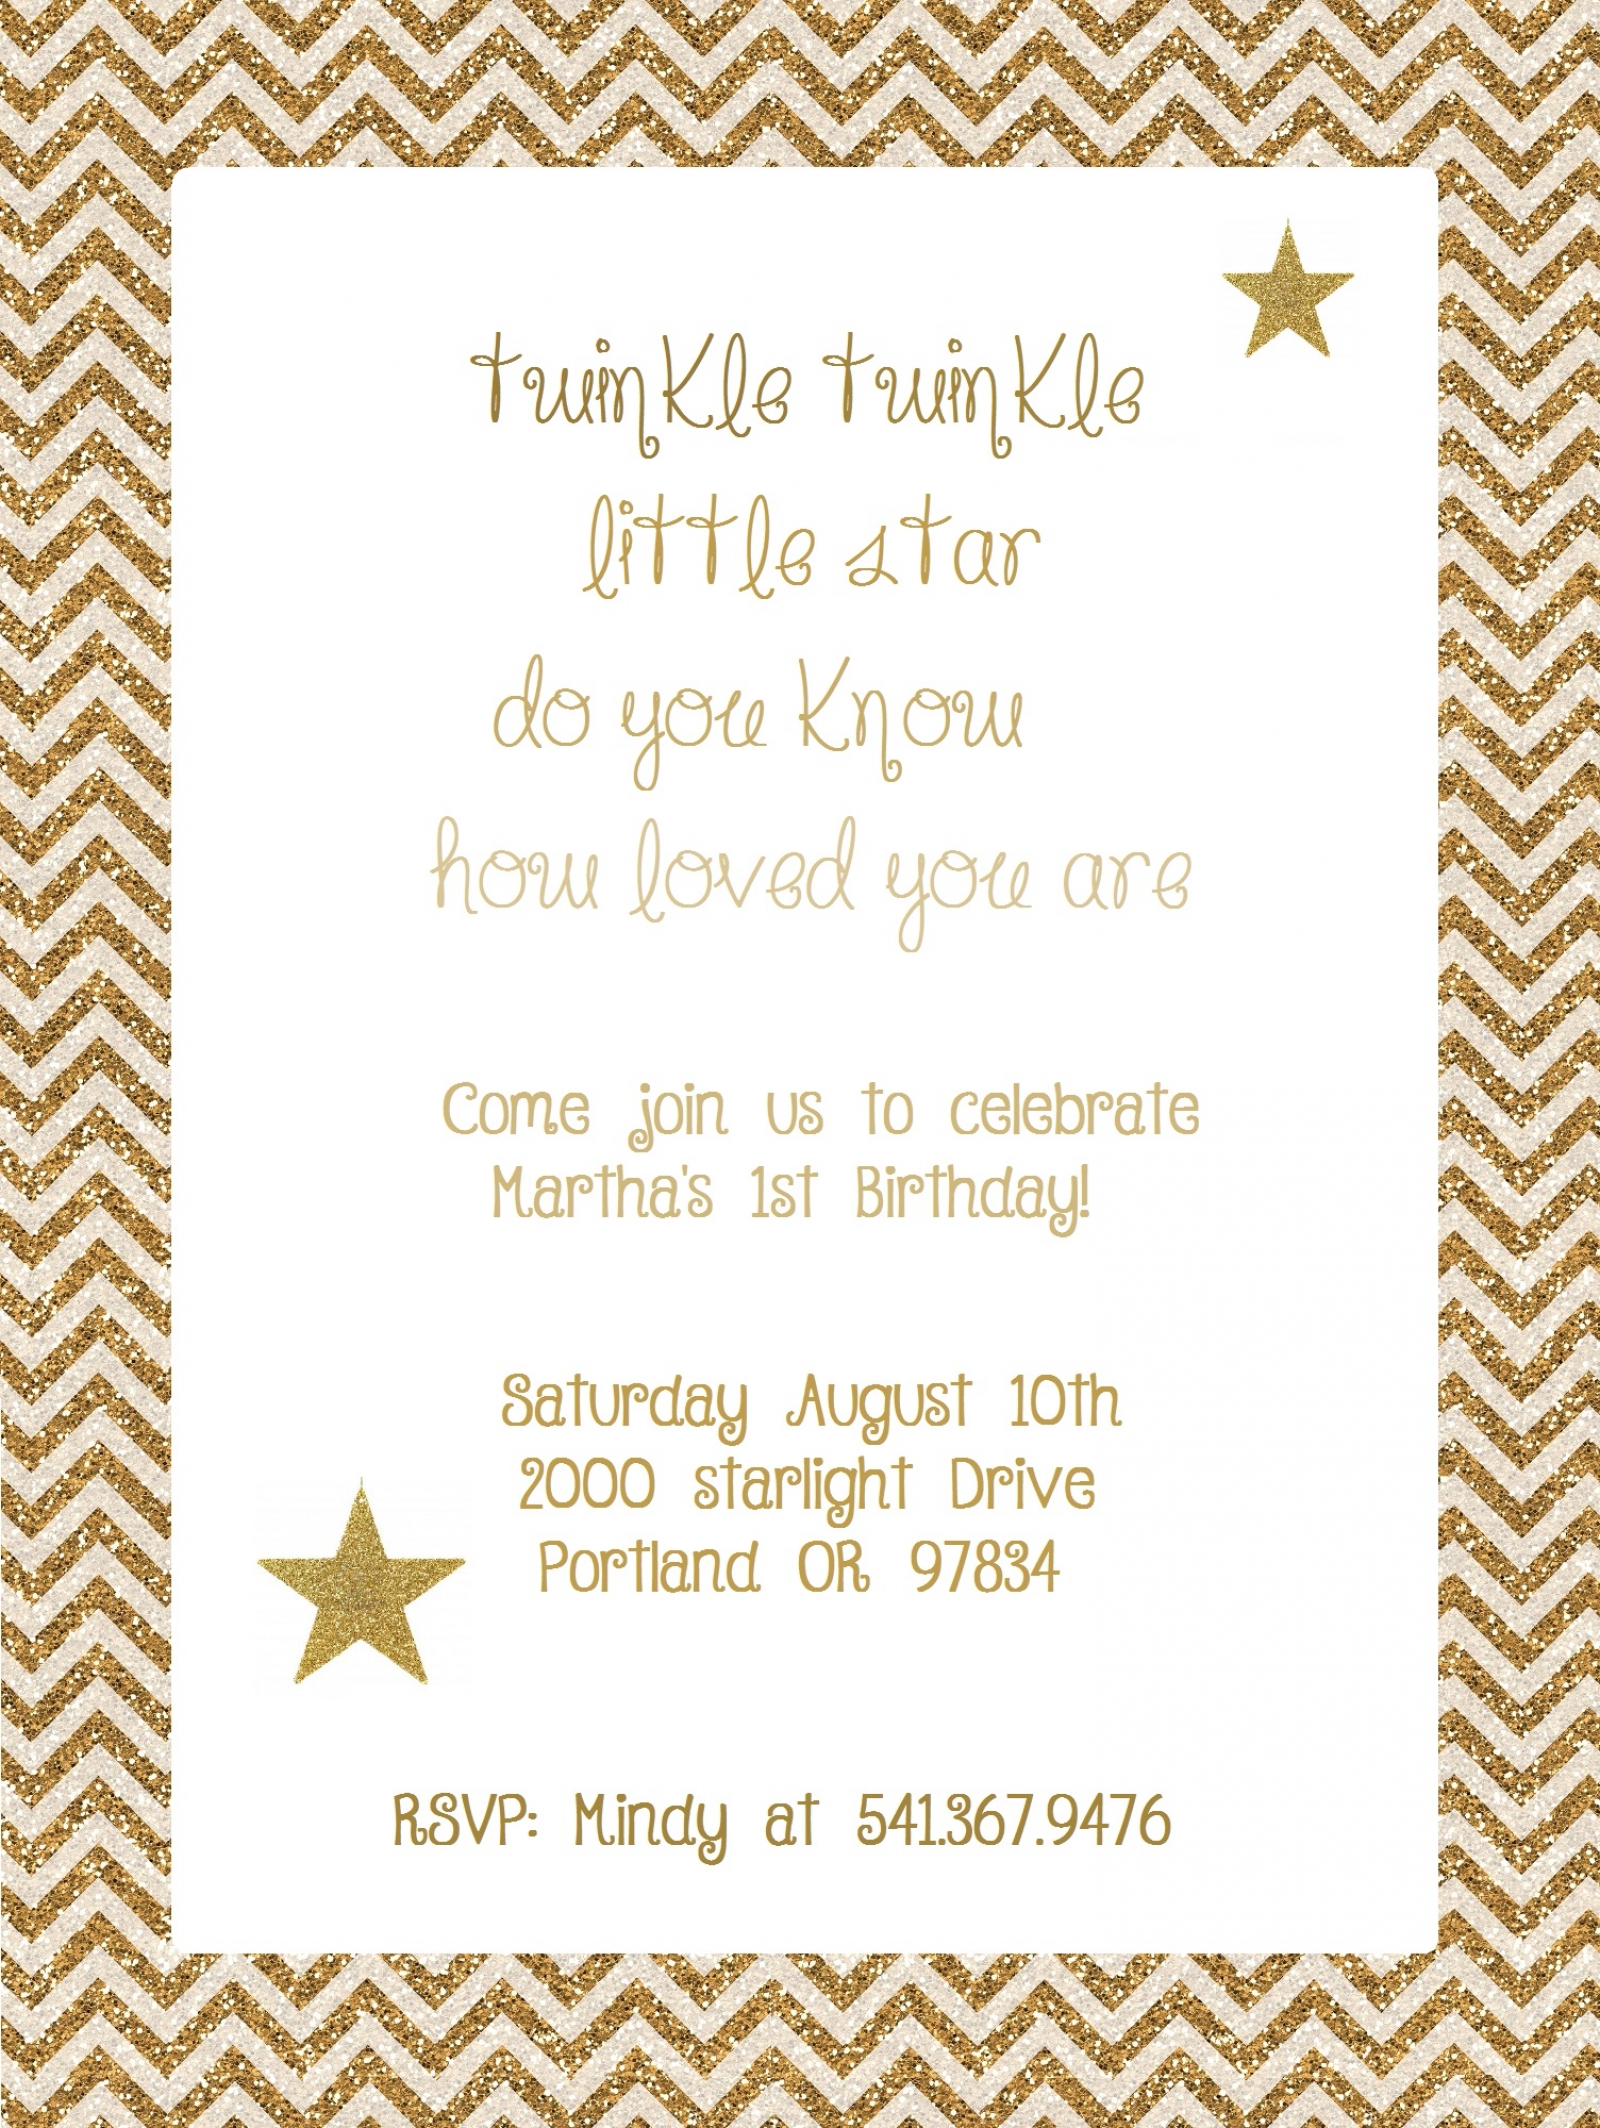 Twinkle Twinkle Little Star | Frolic and Frills